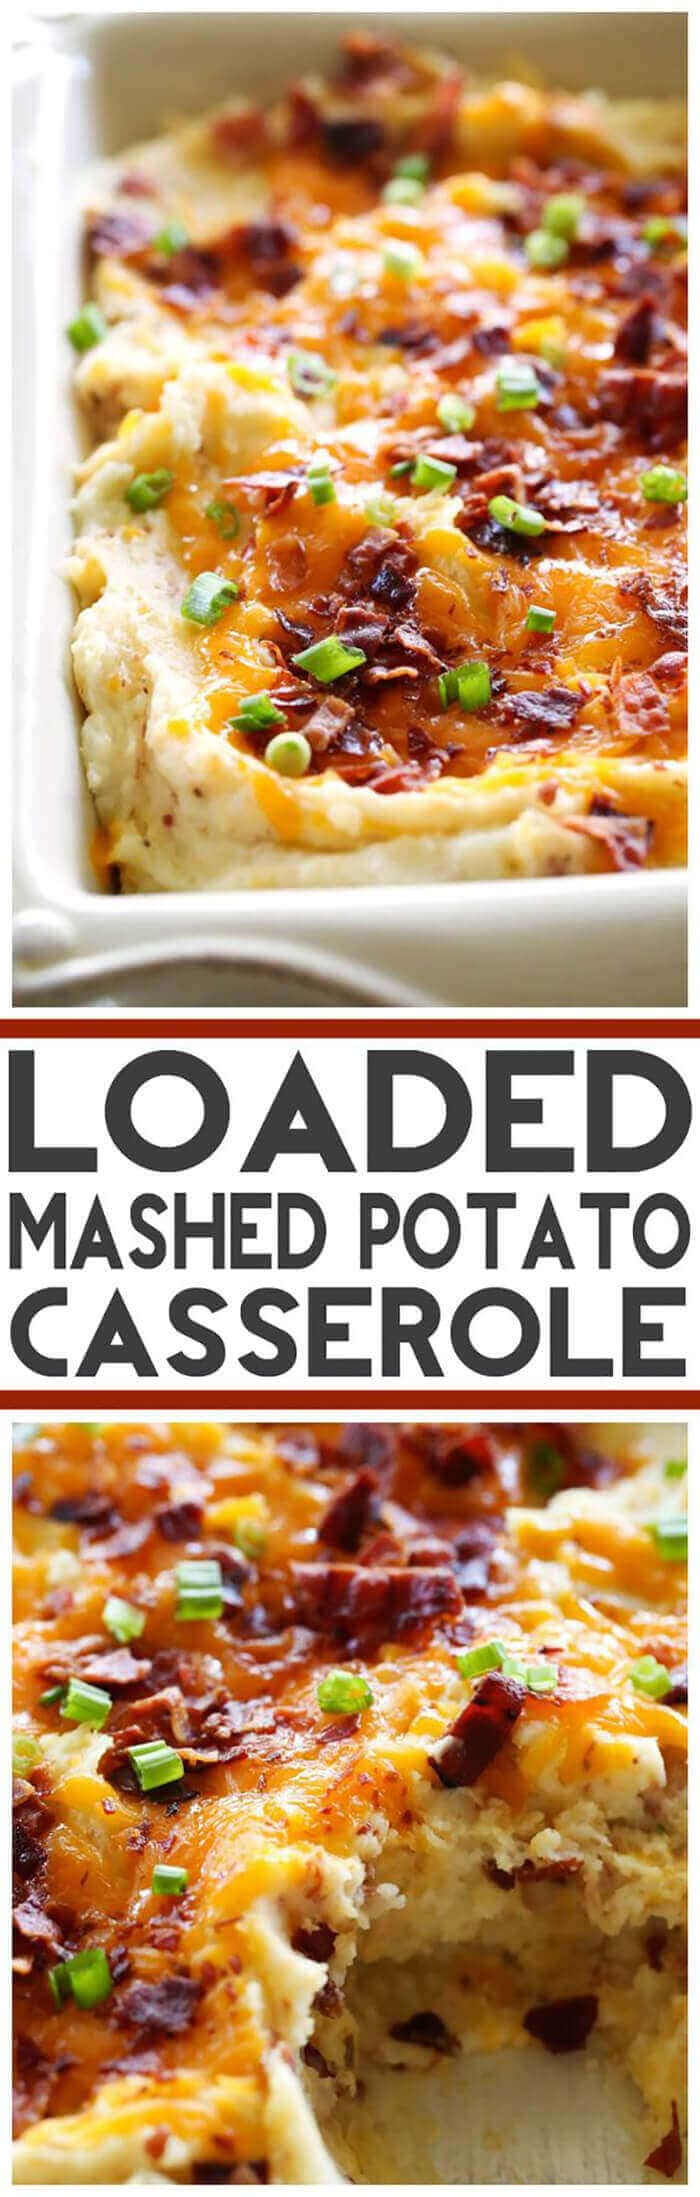 Loaded Mashed Potato Casserole-easter side dishes recipes-easter side dishes vegetables-easter side dishes make ahead-easter side dishes recipes veggies-easter side dishes recipes simple